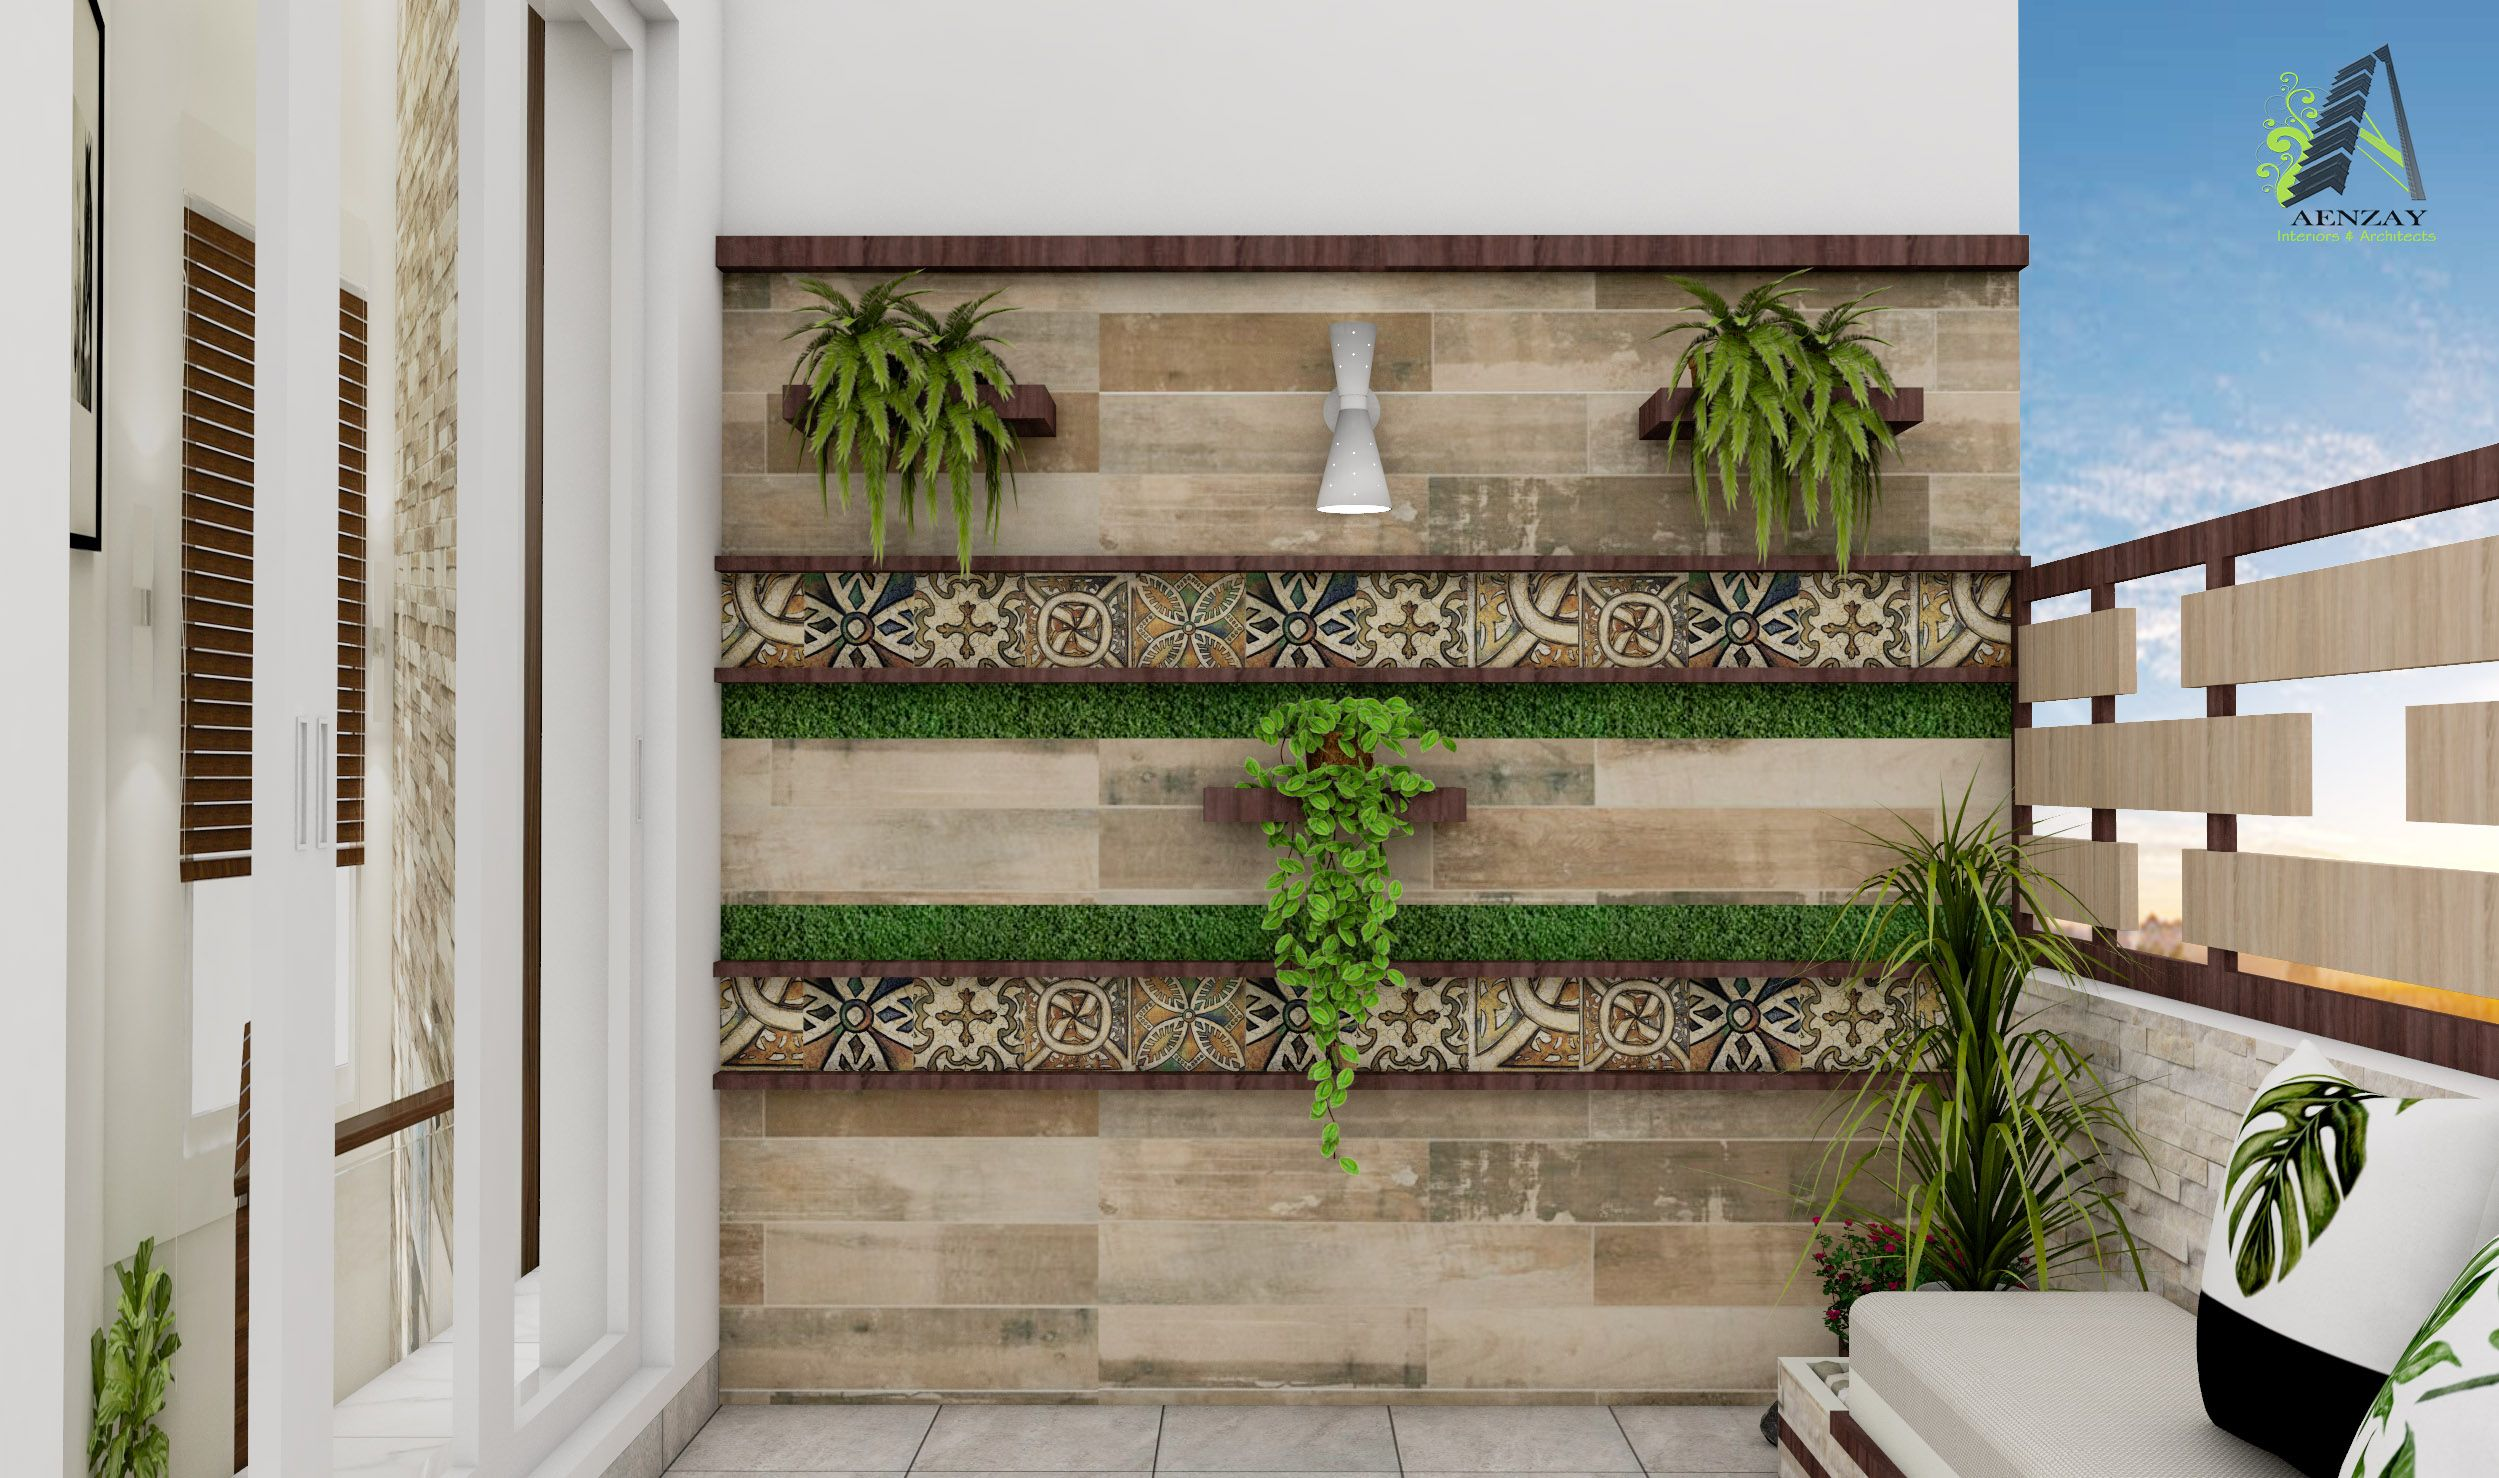 Terrace Design By Aenzay Interiors Architects We Provide Home Design In Pakistan Terrace Design Interior Architect Best Architects